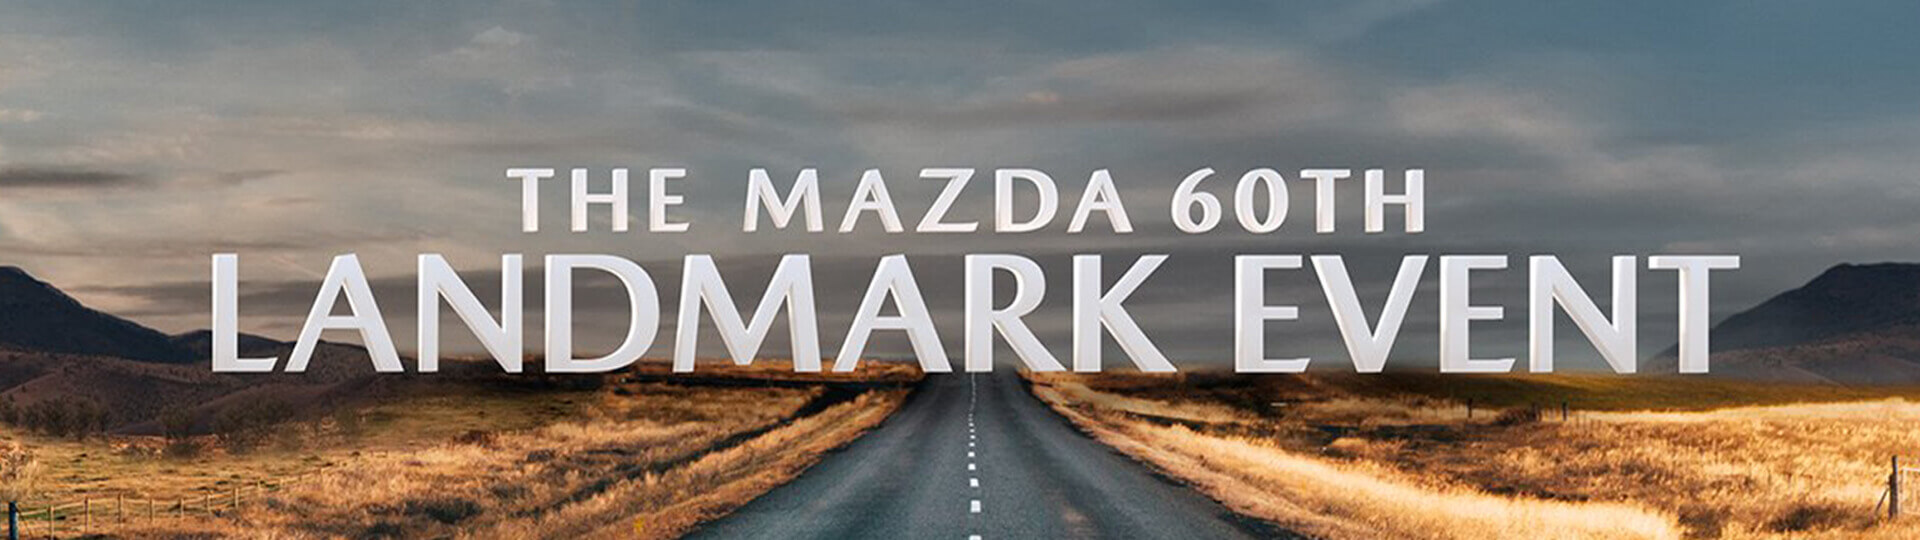 The Mazda 60th Landmark Event.